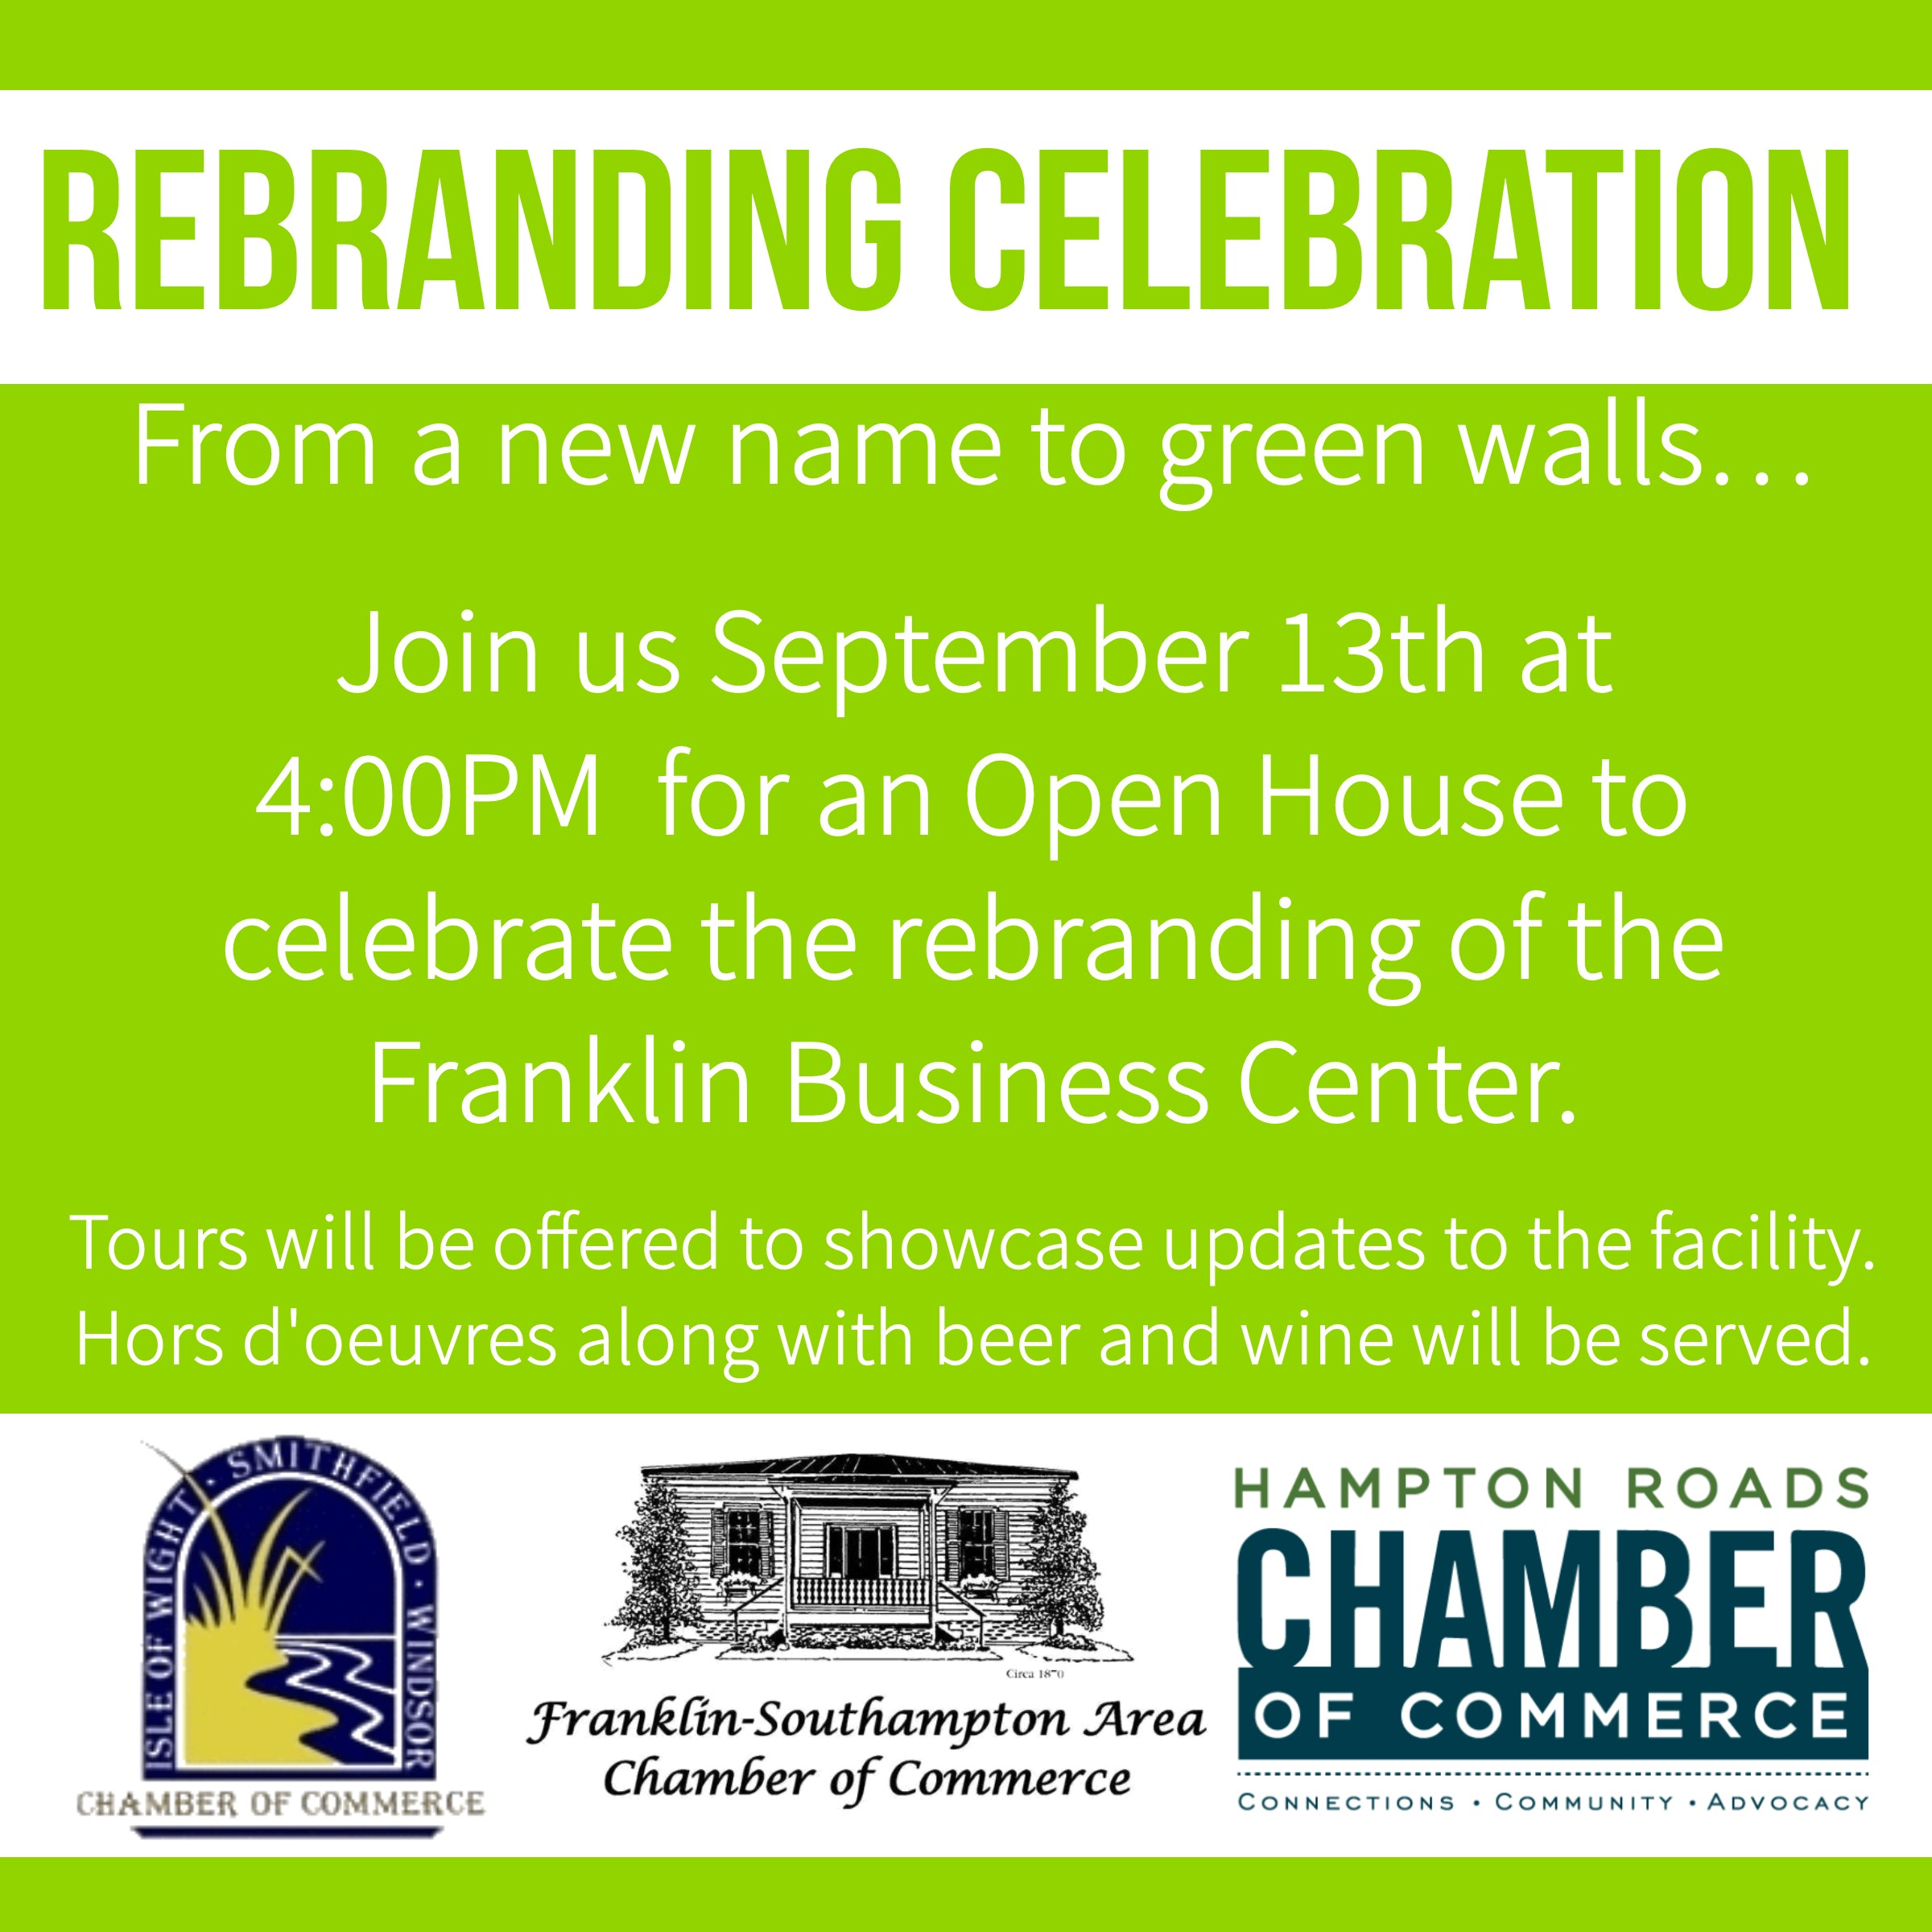 Franklin Business Center Rebranding Celebration